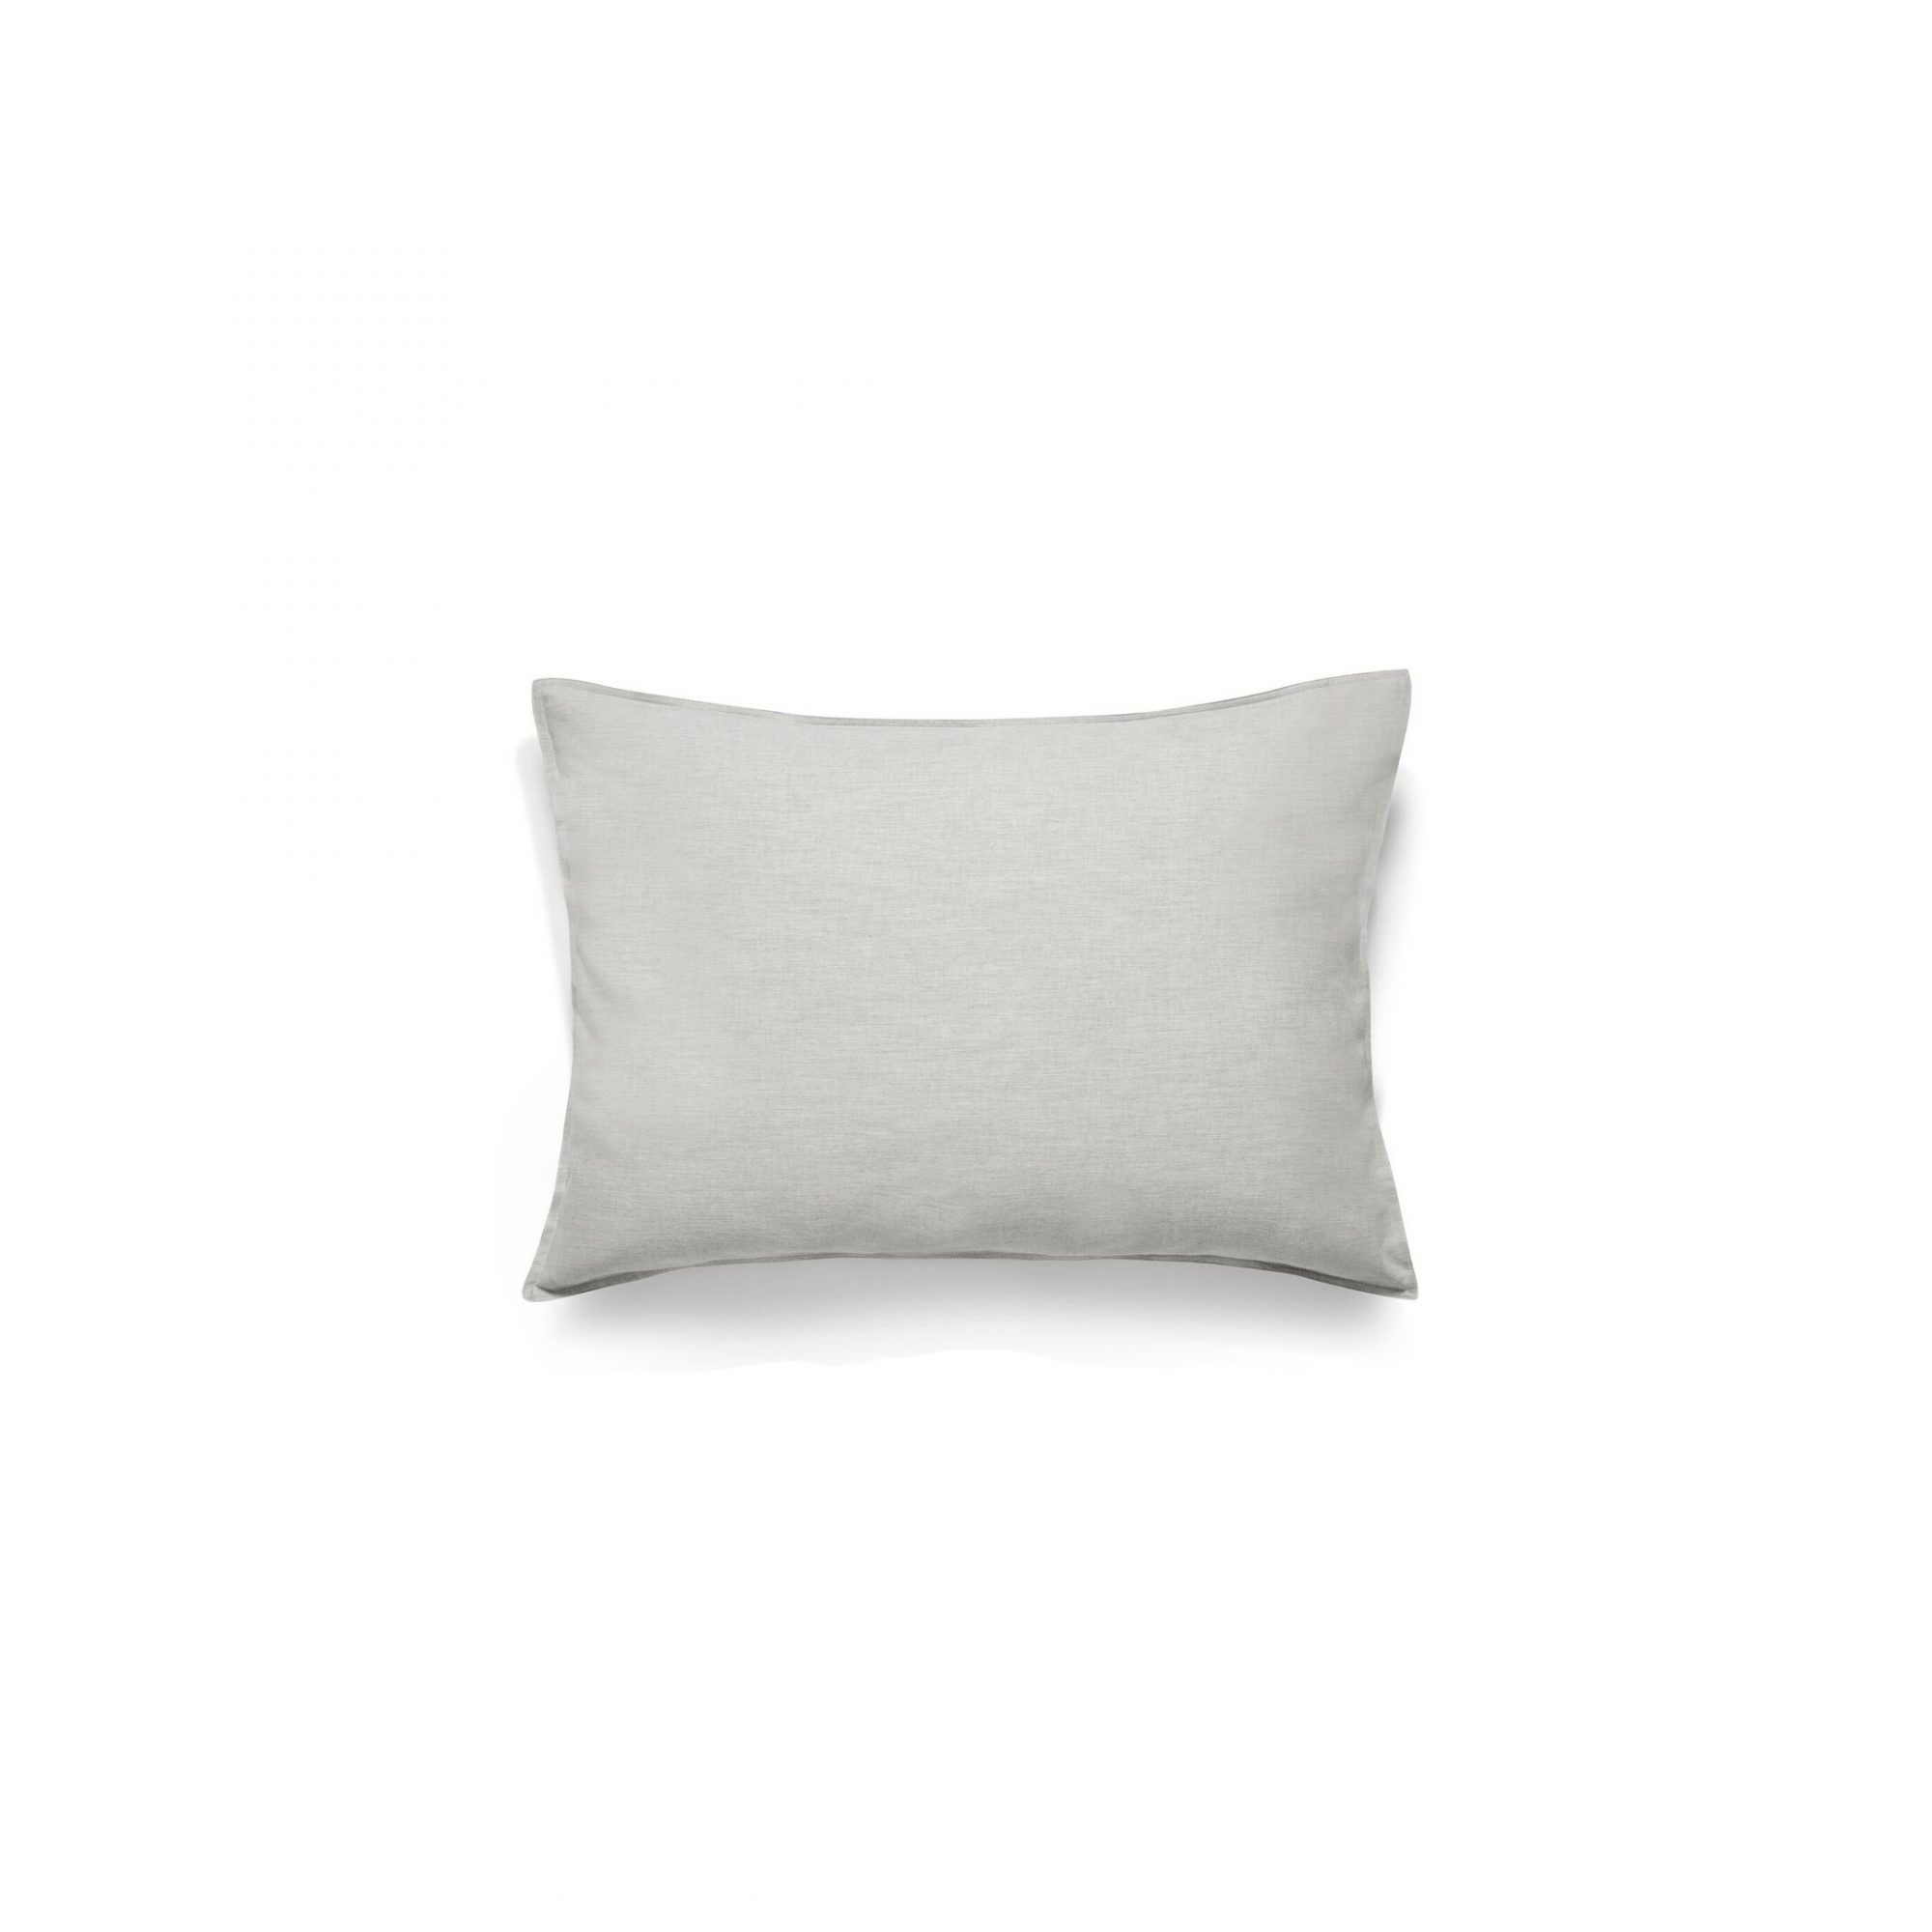 Brooklinen Cashmere Pillowcase Set